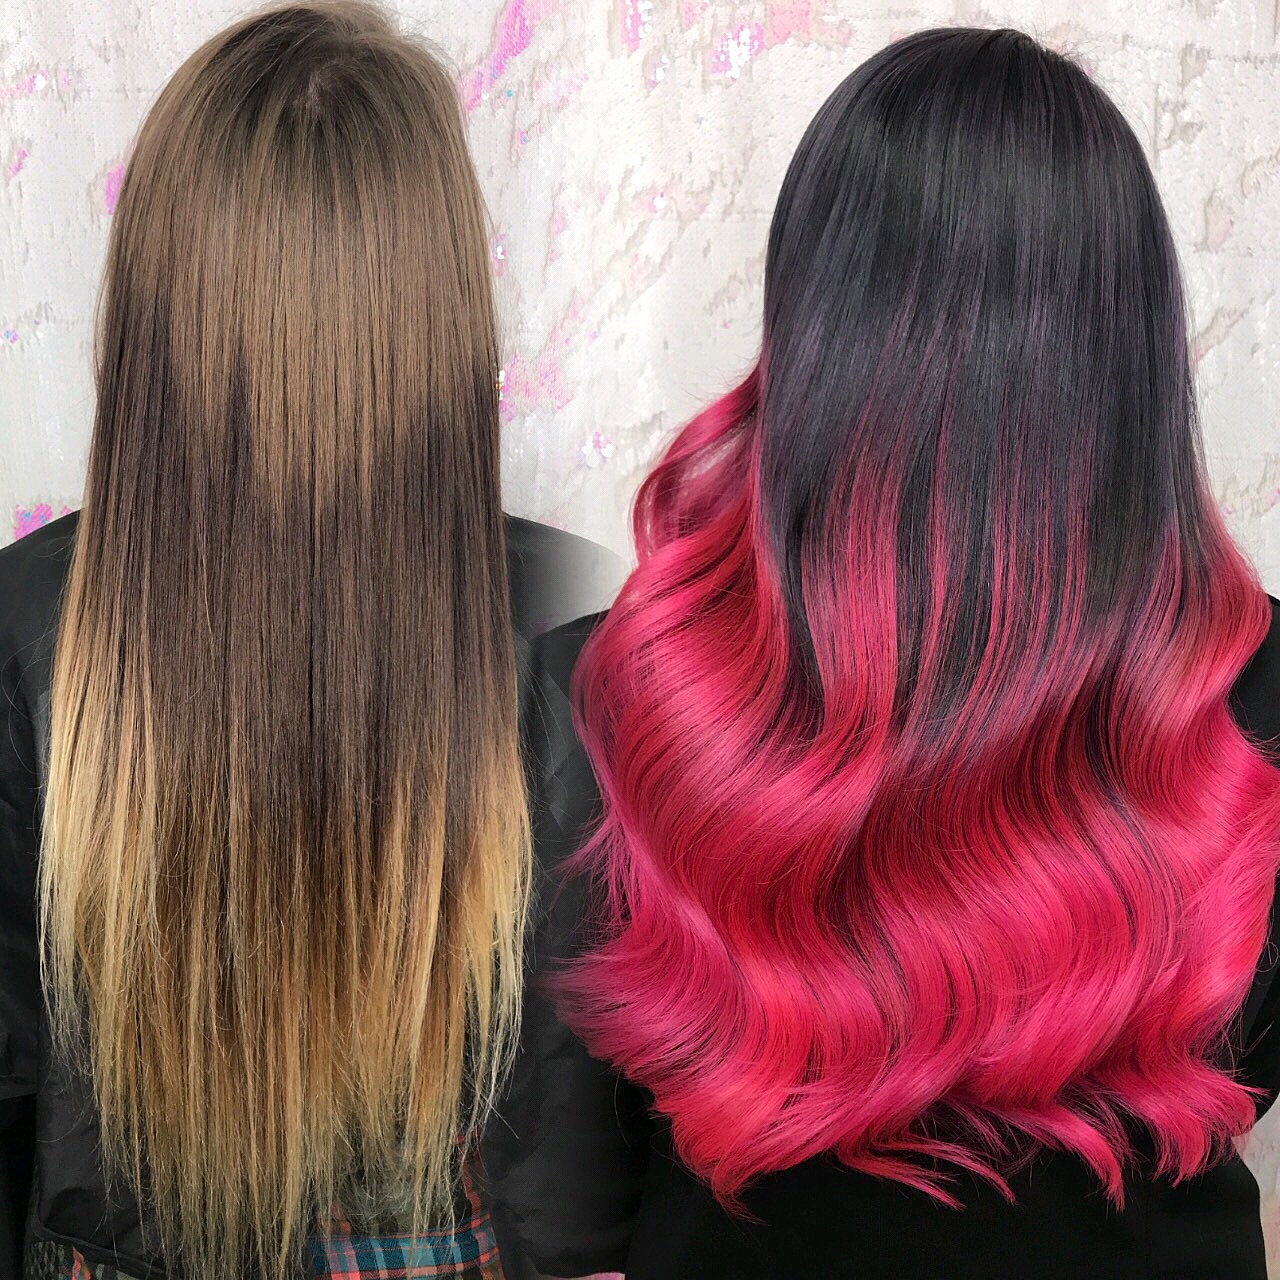 Gray and Pink ombre hair color